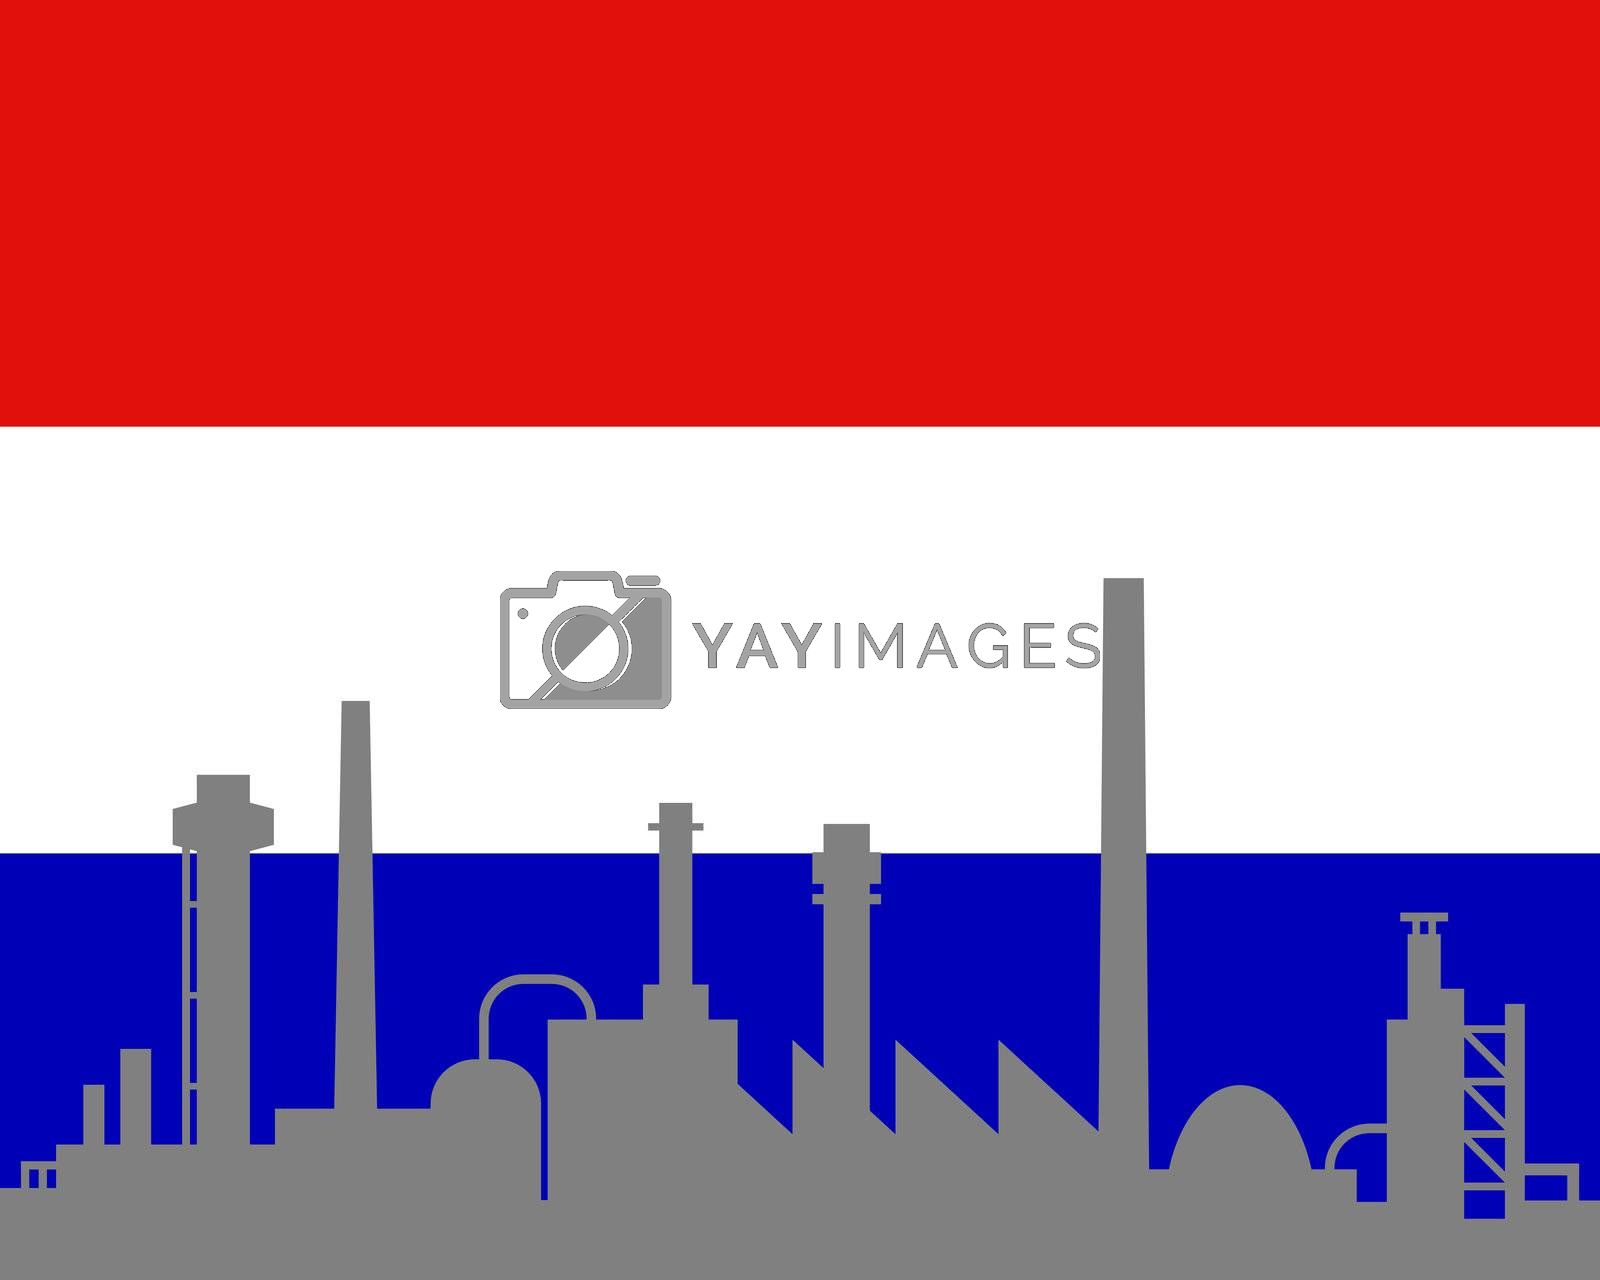 Industry and flag of the Netherlands